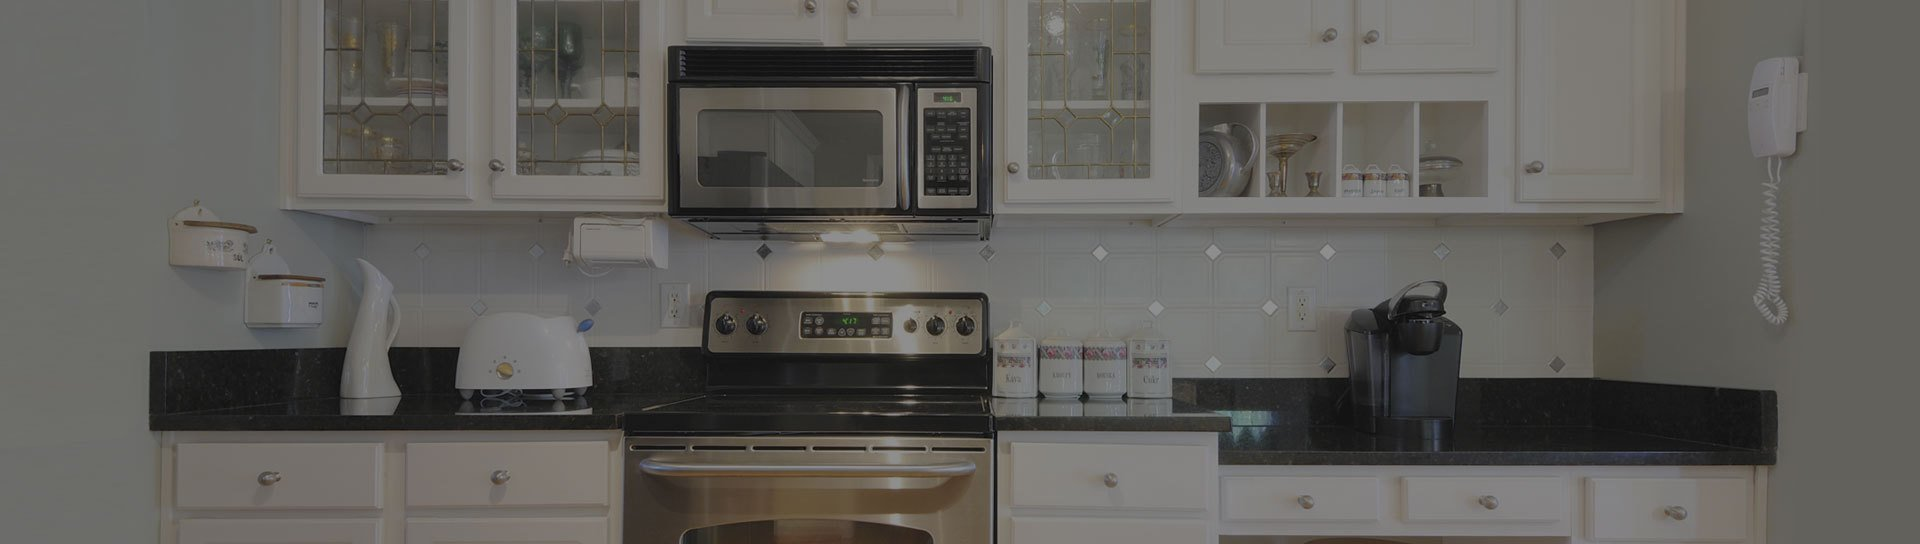 Kitchen Appliance Repairs Appliance Servicing In Cambridge By Main Appliances And Electrical